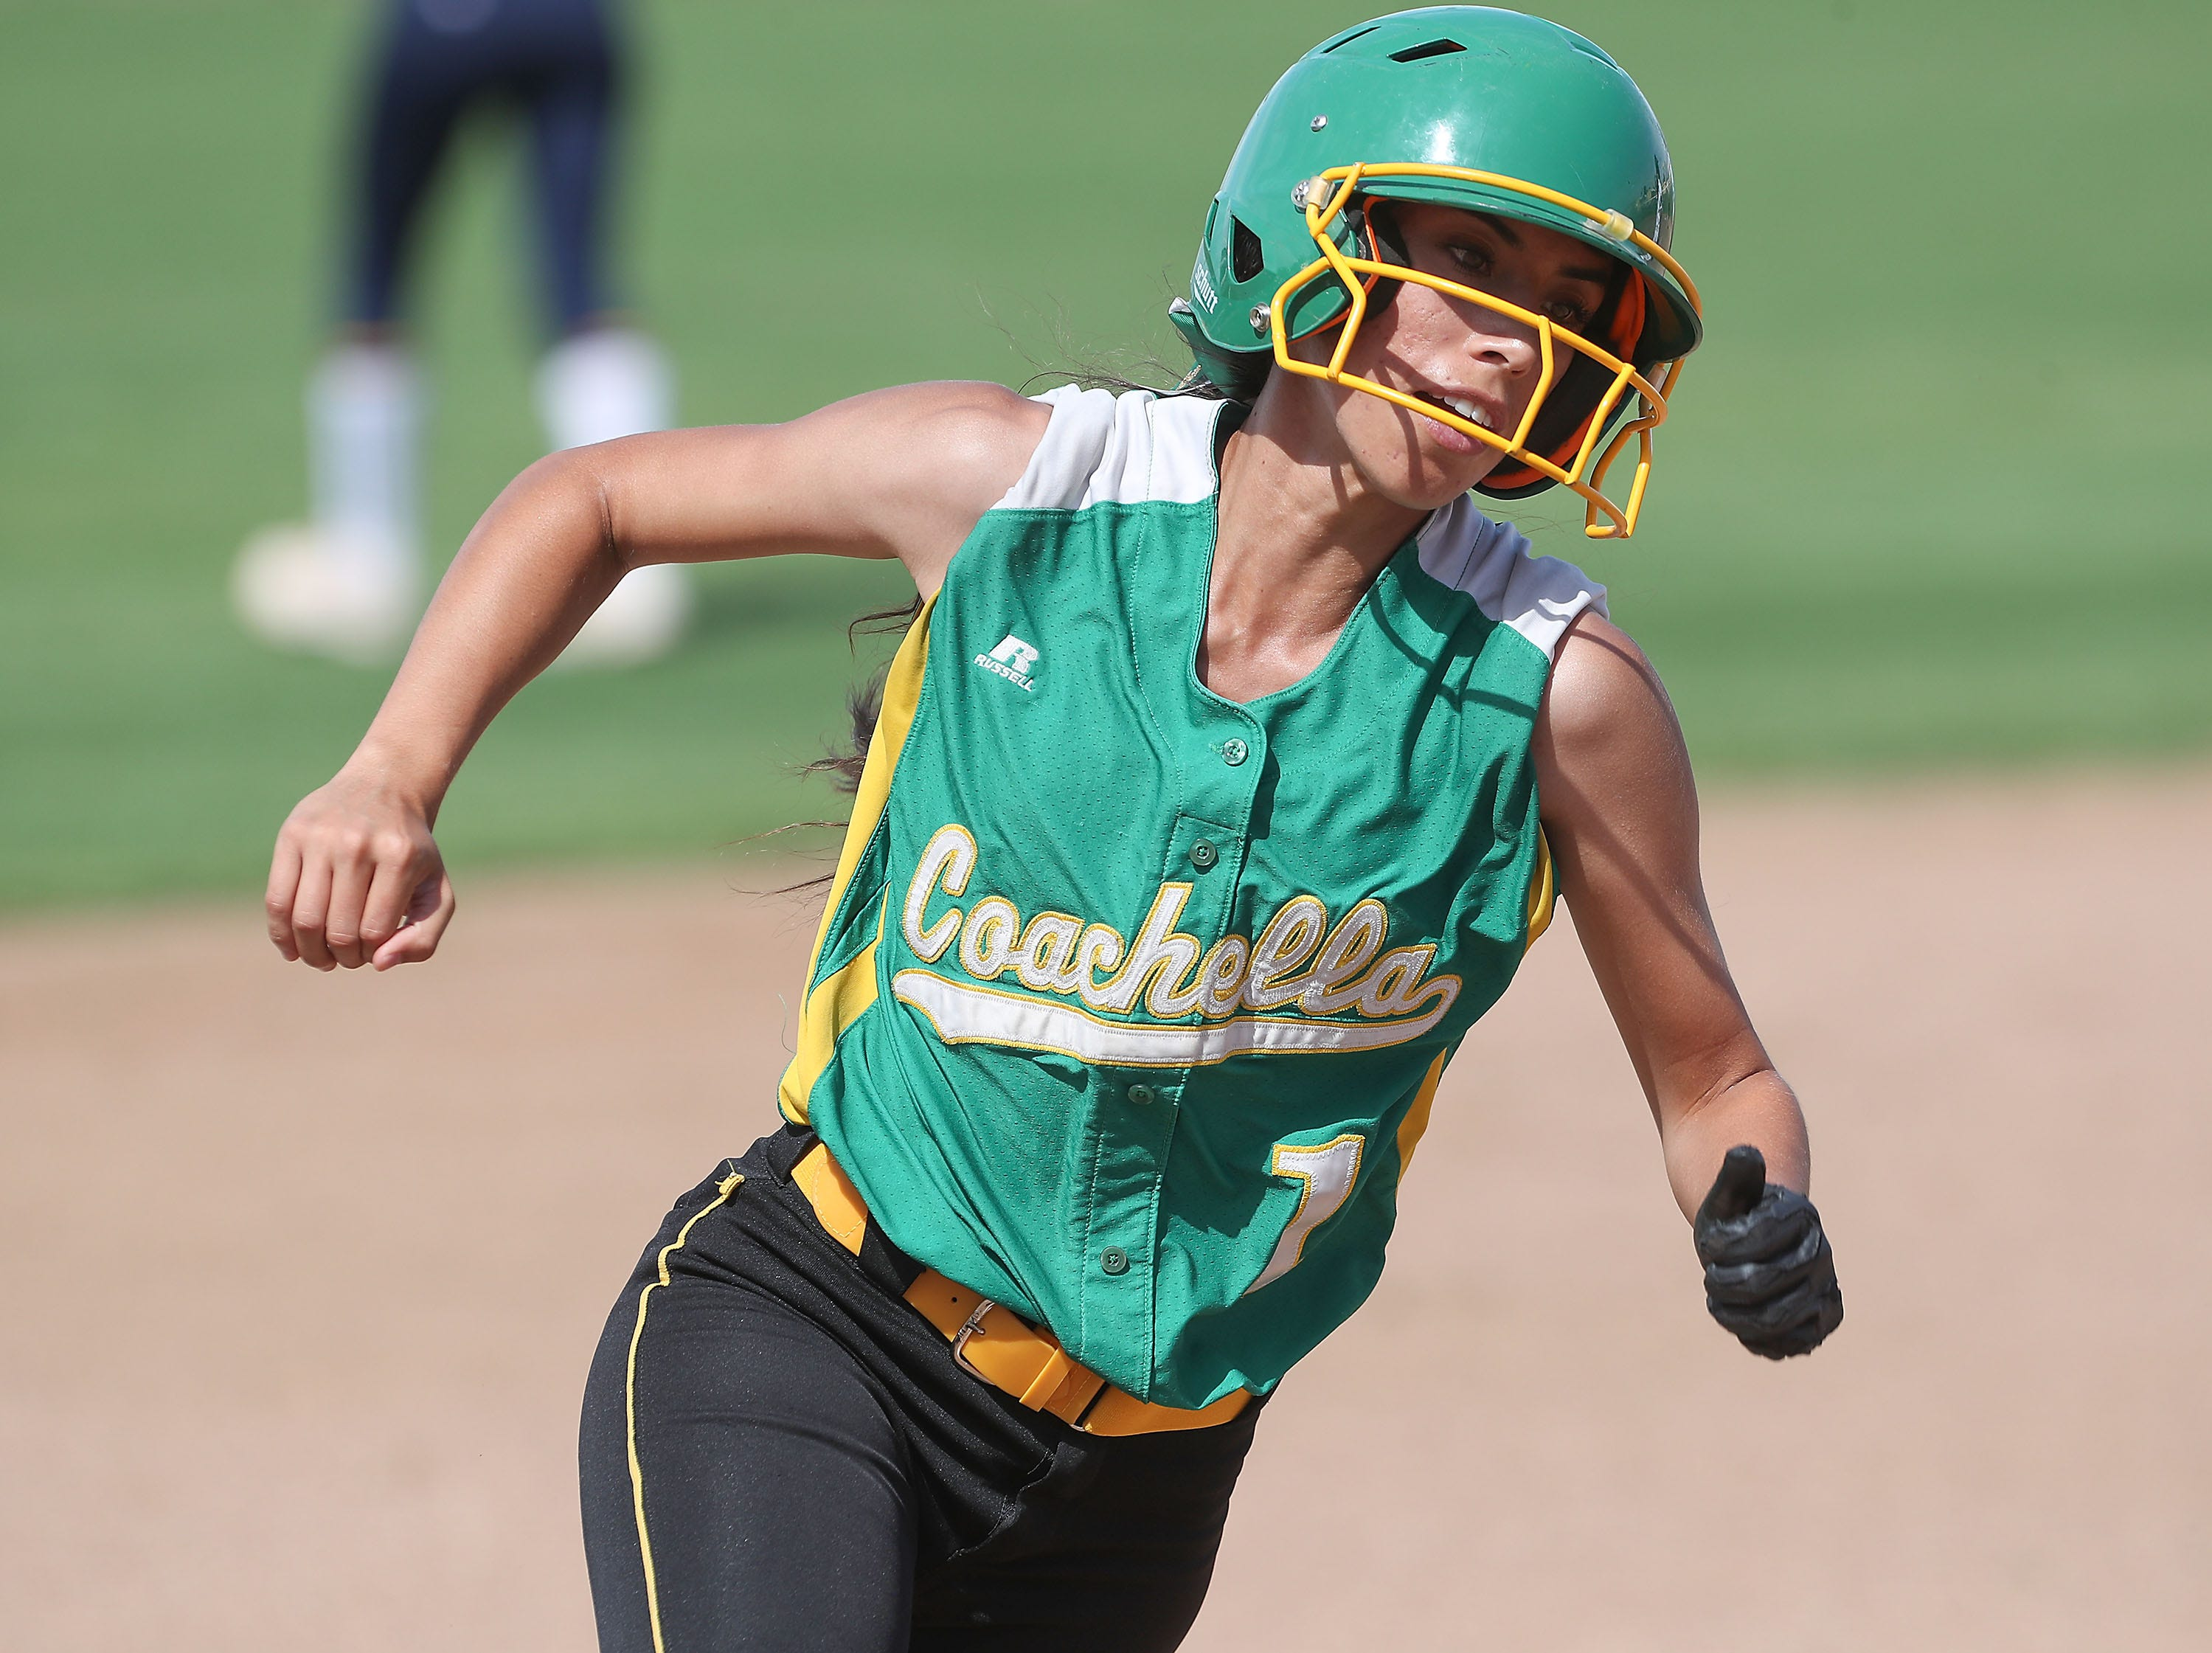 Elizabeth Olivas of Coachella Valley rounds the bases and scores for Coachella against Anaheim, May 9, 2019.